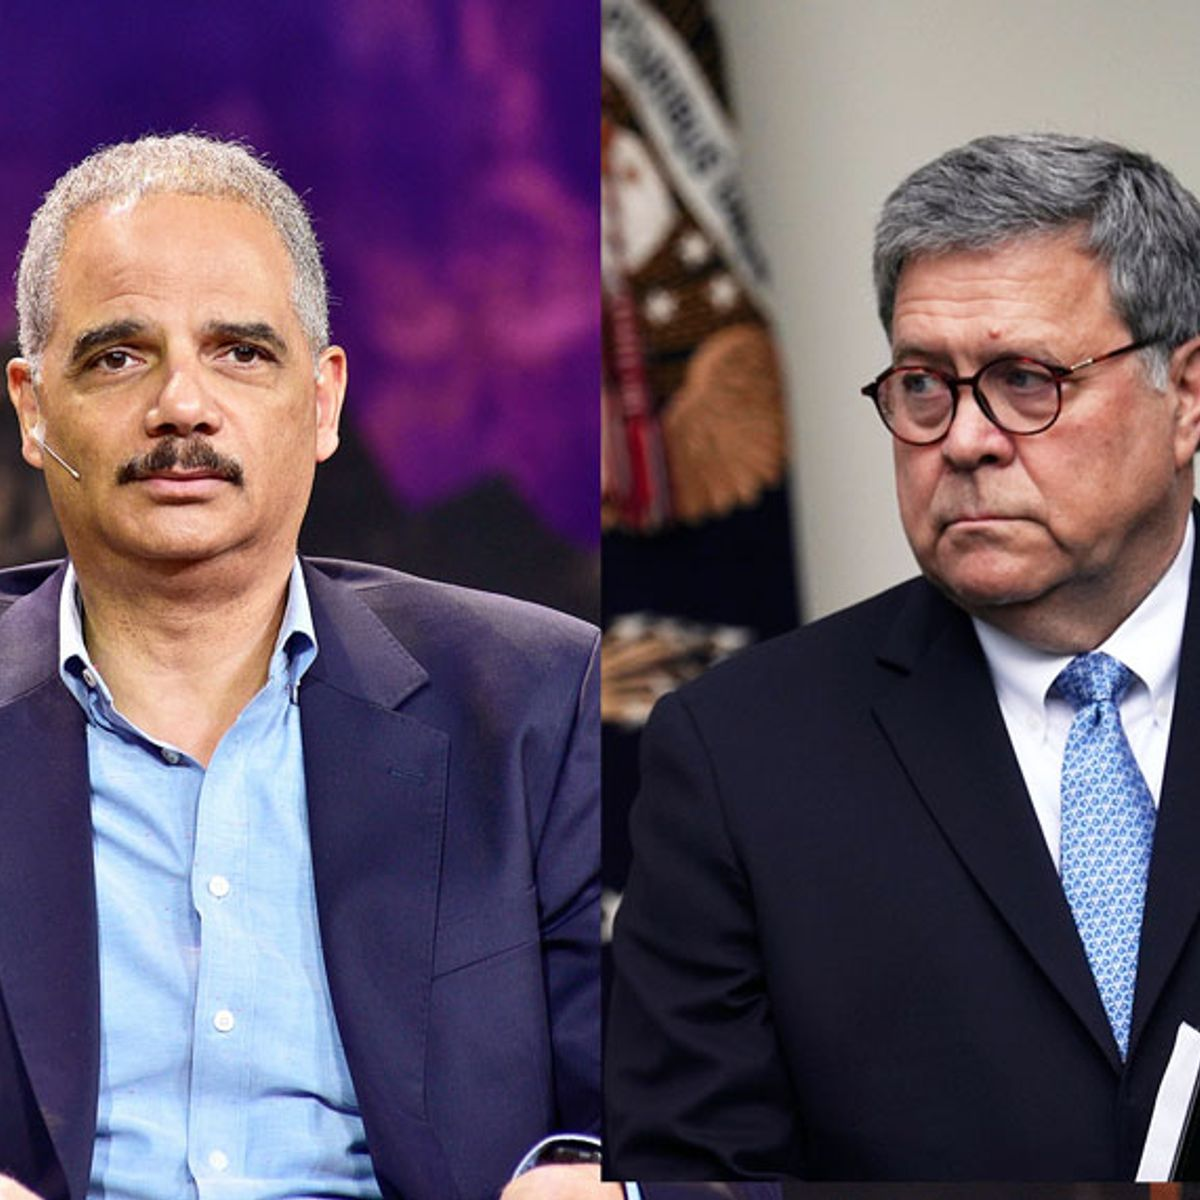 """Eric Holder unloads on William Barr's """"nakedly partisan"""" defense of Trump: """"He is unfit to lead"""""""